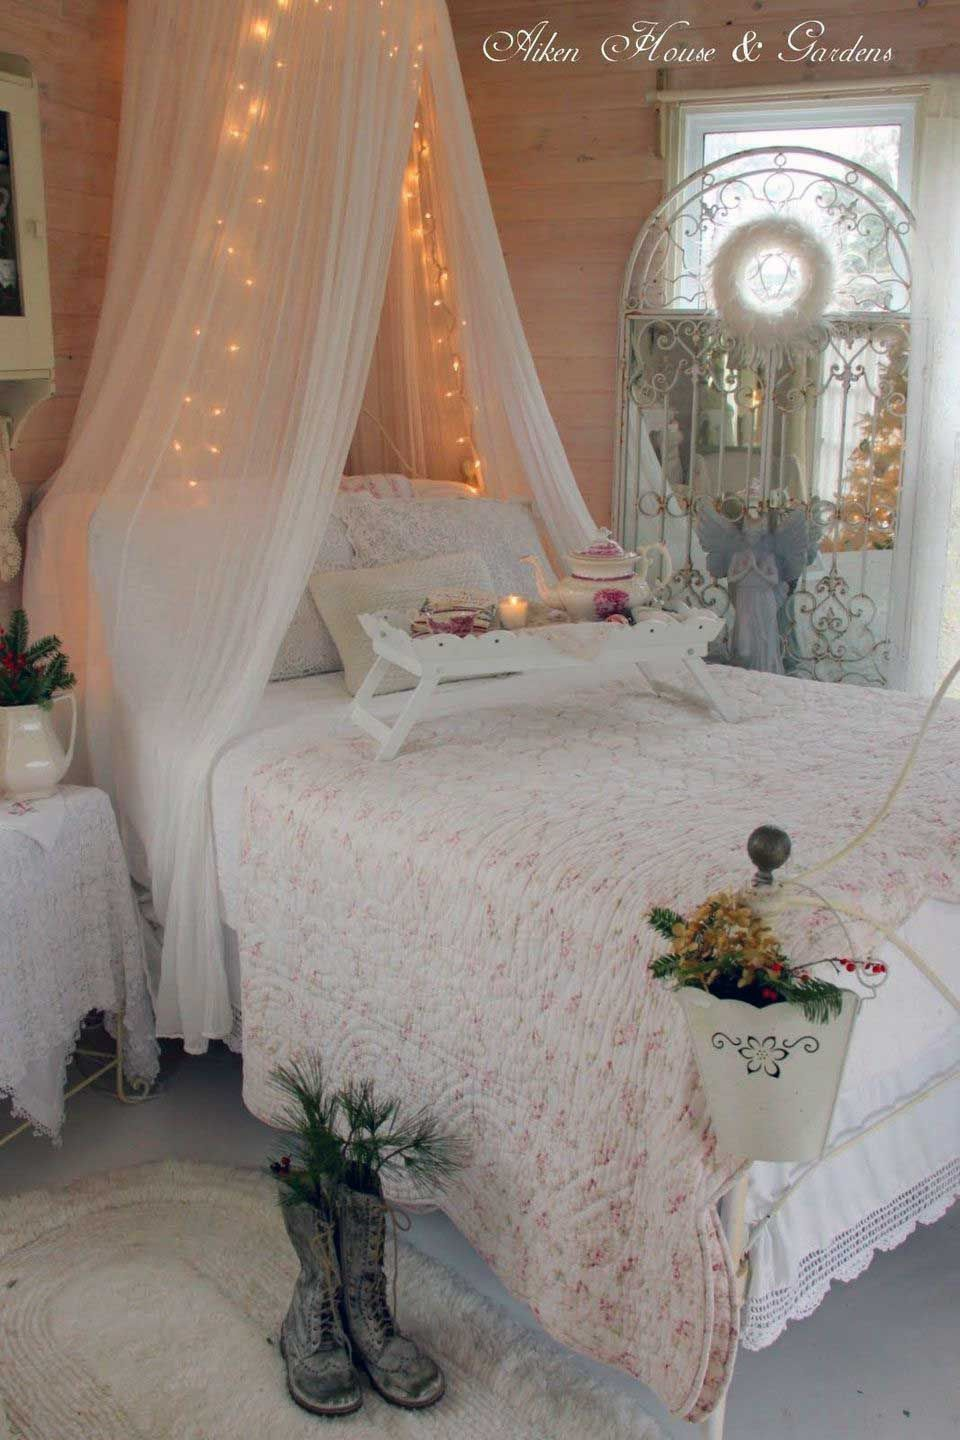 30 small spaces girly apartment bedroom ideas | modern